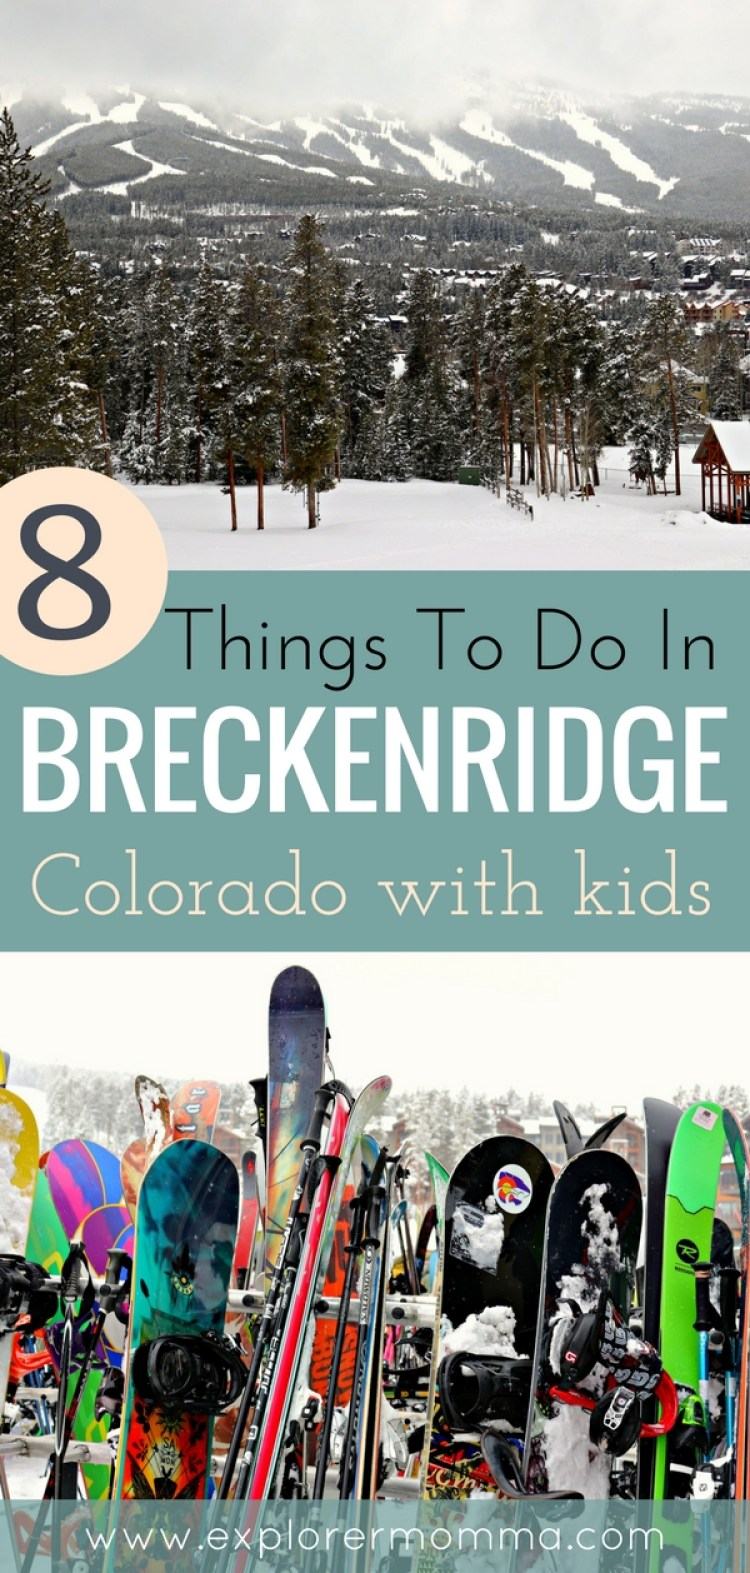 Things to do in Breckenridge, CO with kids